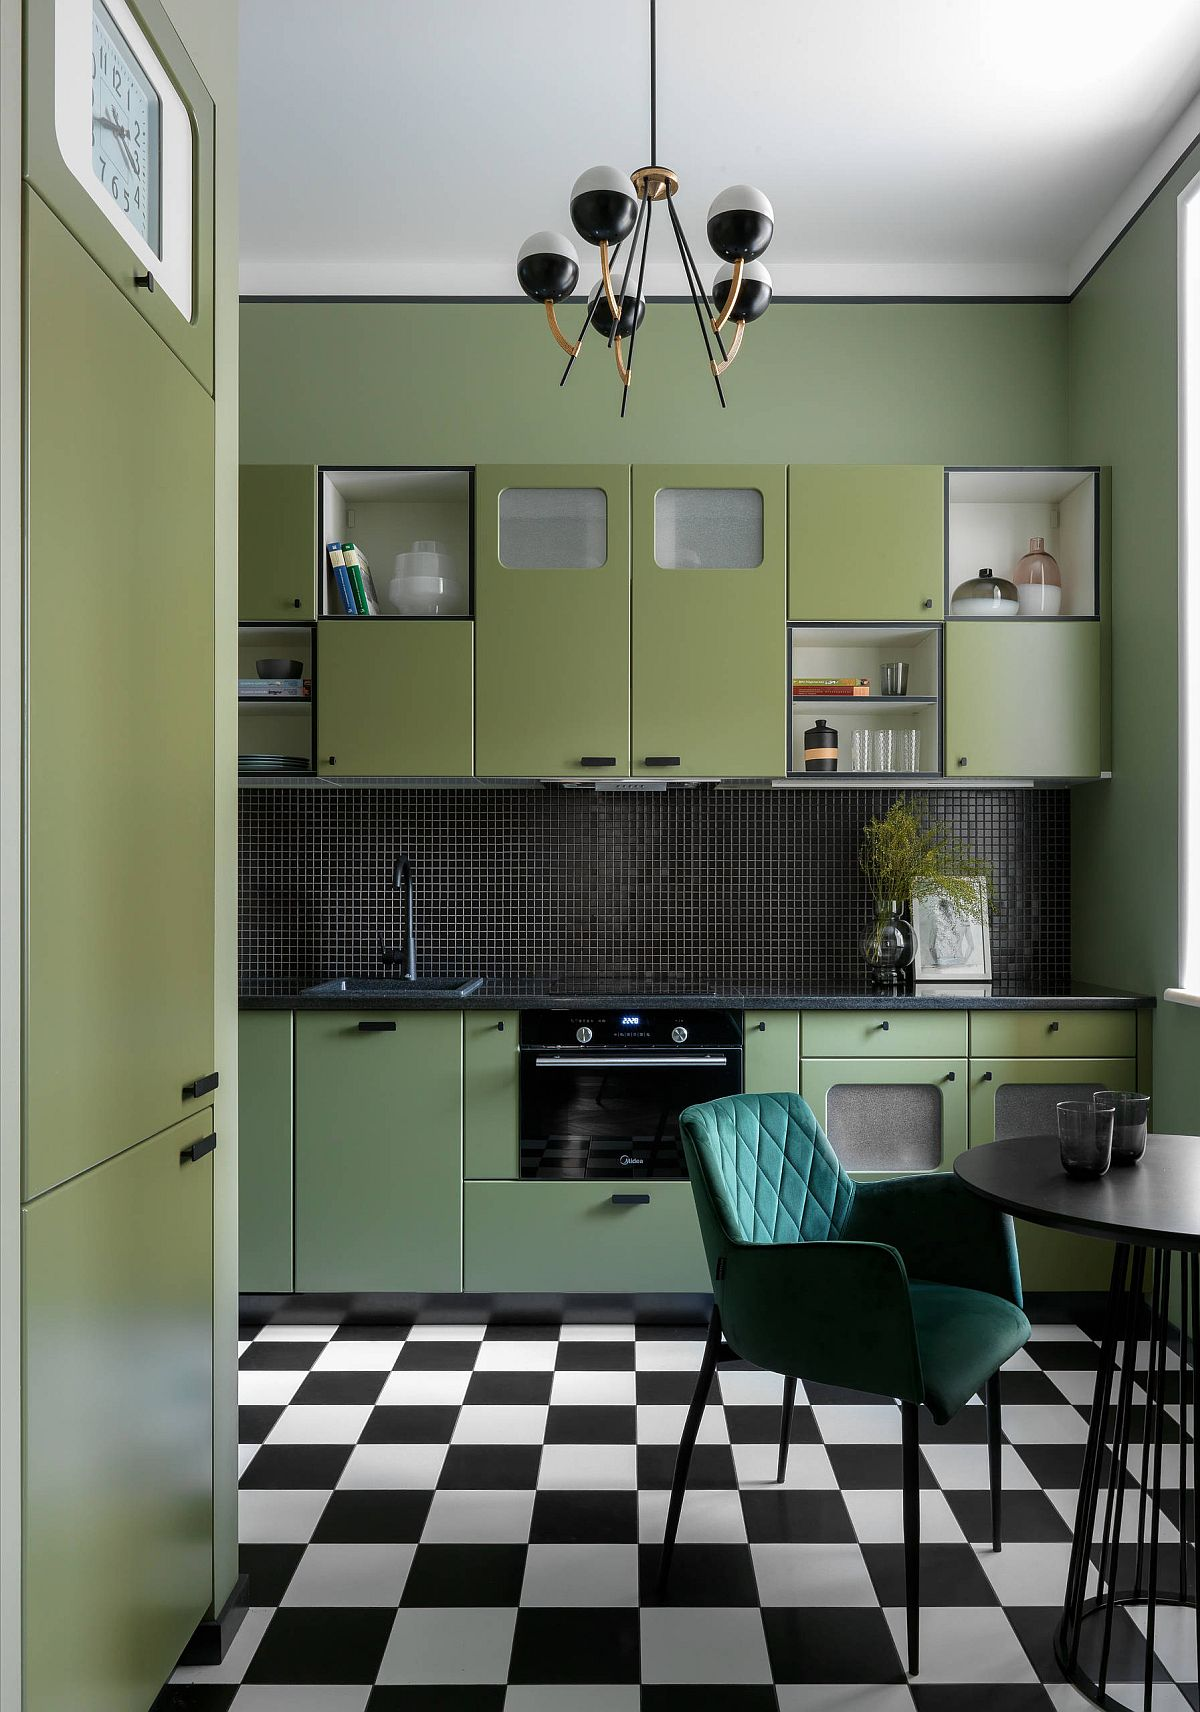 Black-and-white-kitchen-floor-tiles-take-you-back-in-time-and-give-the-space-a-retro-look-22144